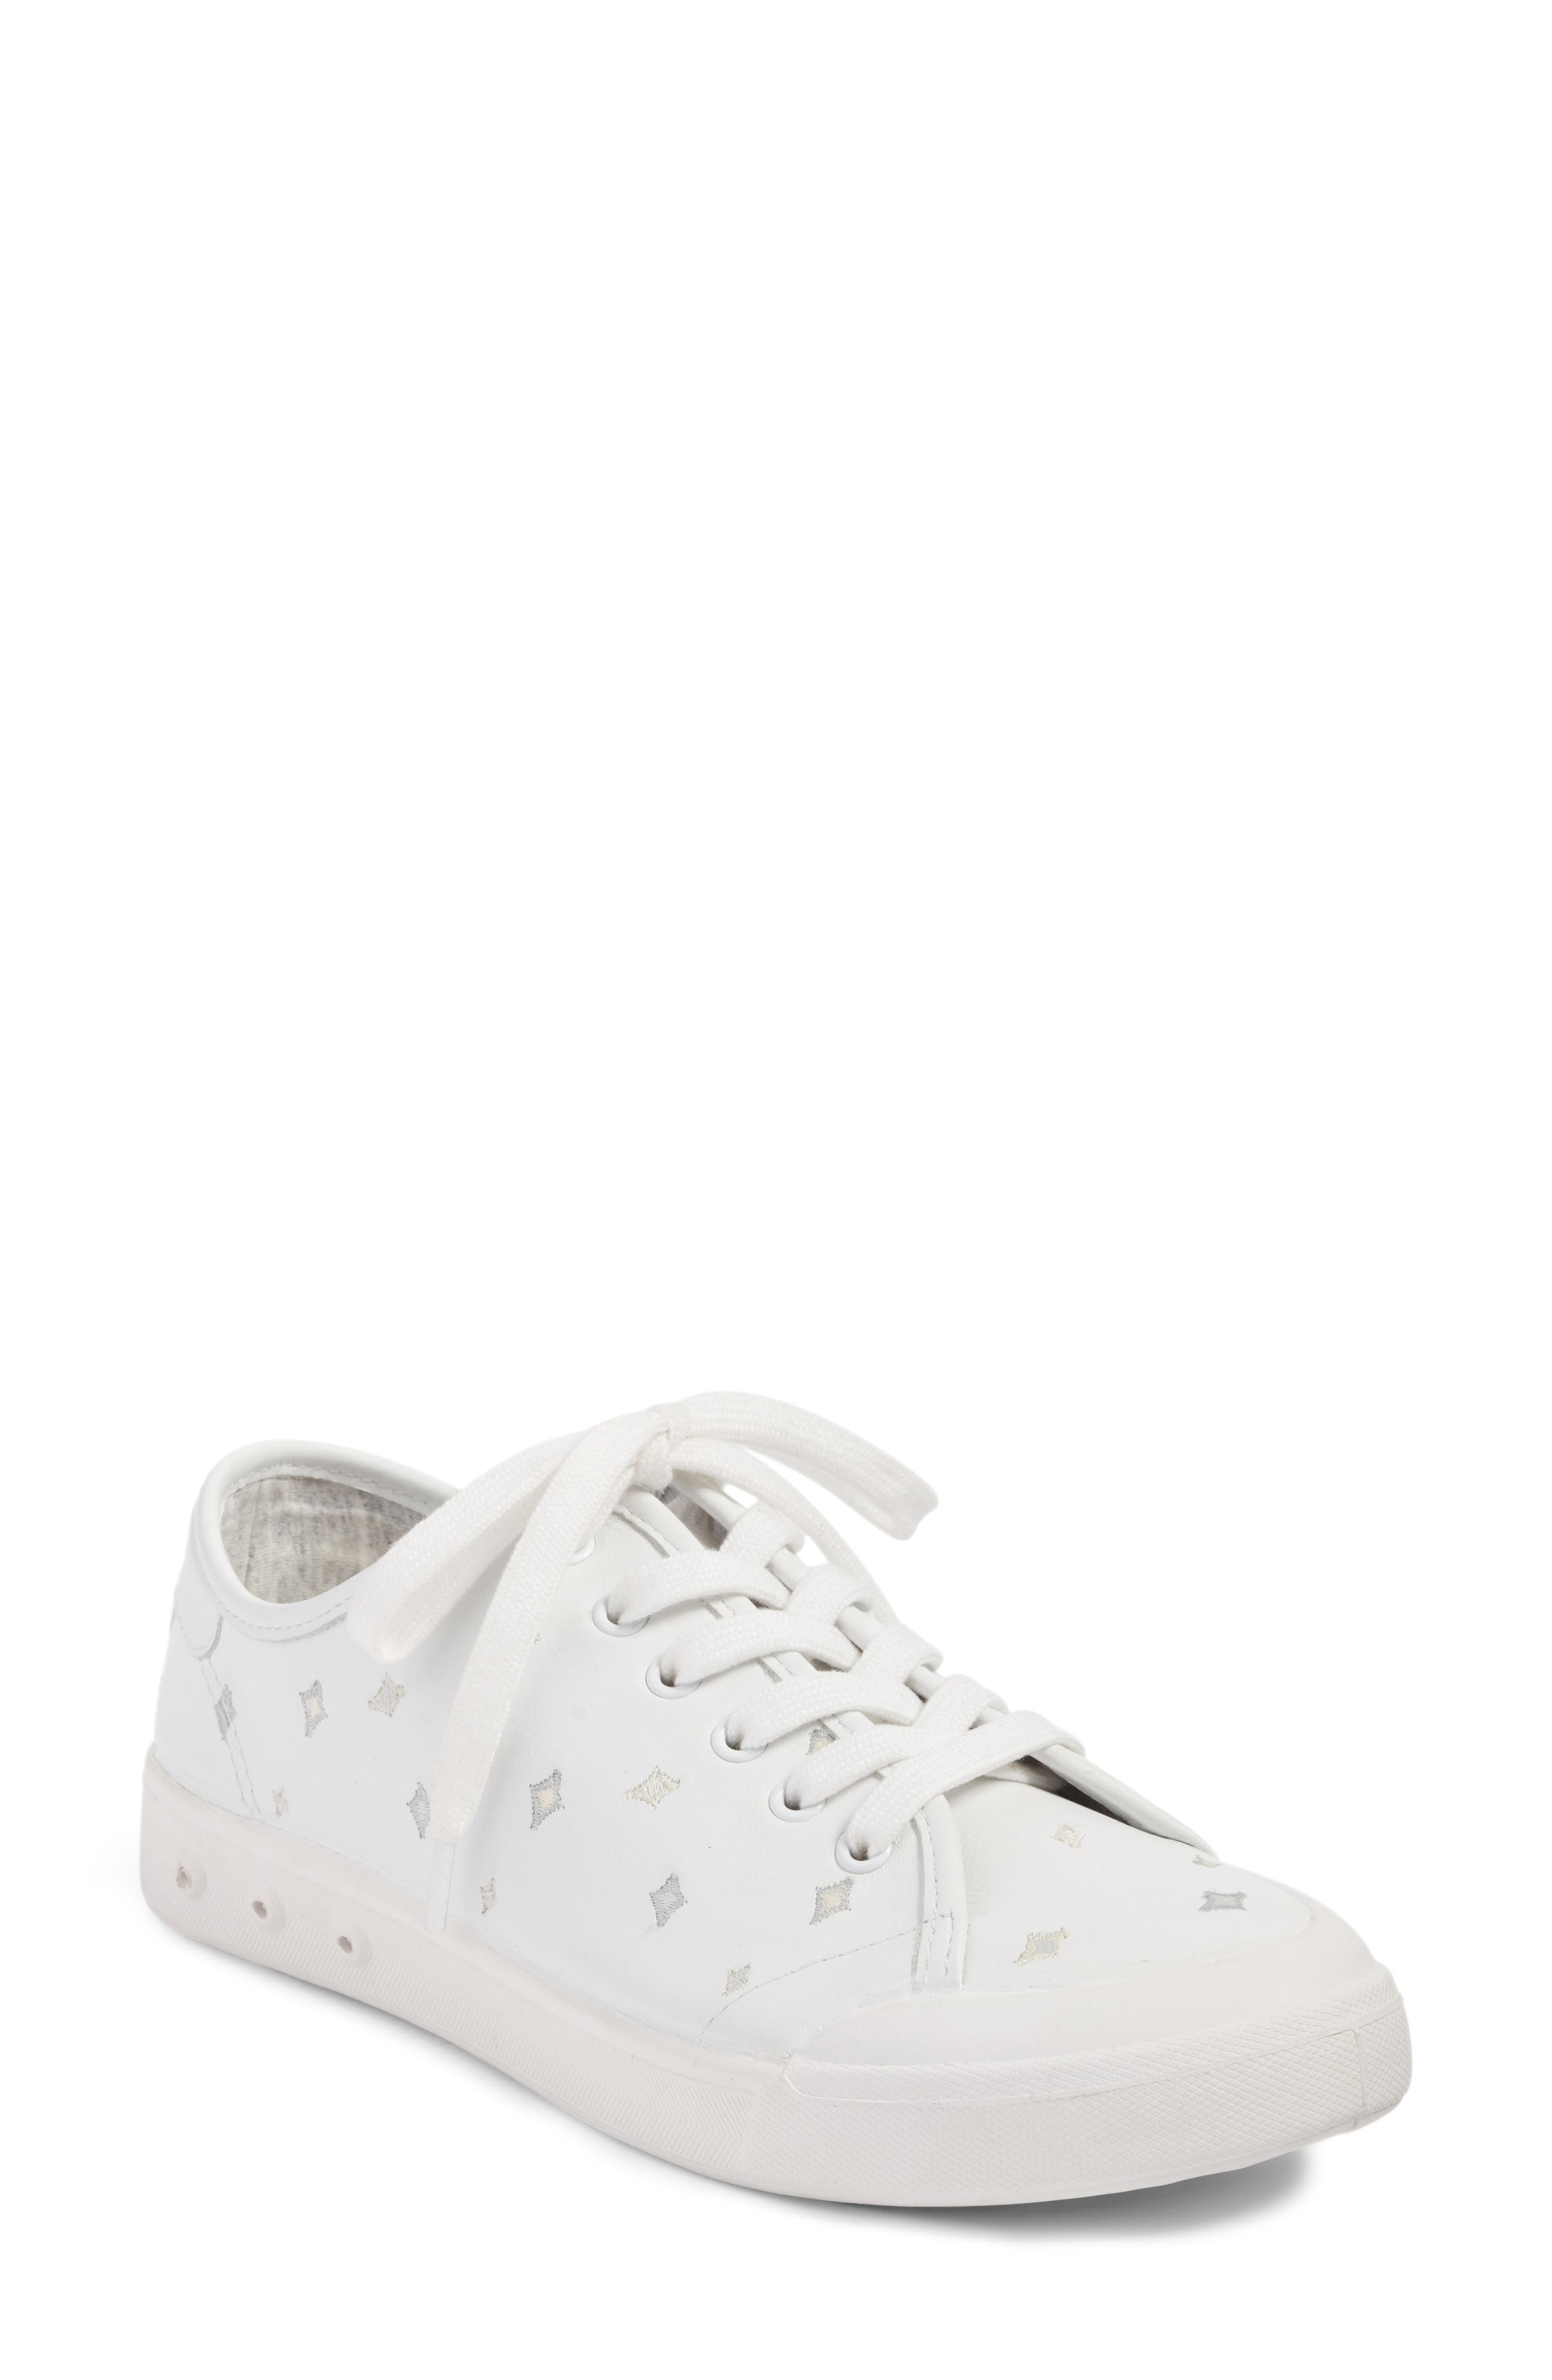 Embroidered Standard Issue Sneaker,                             Main thumbnail 1, color,                             White Leather Embroidery